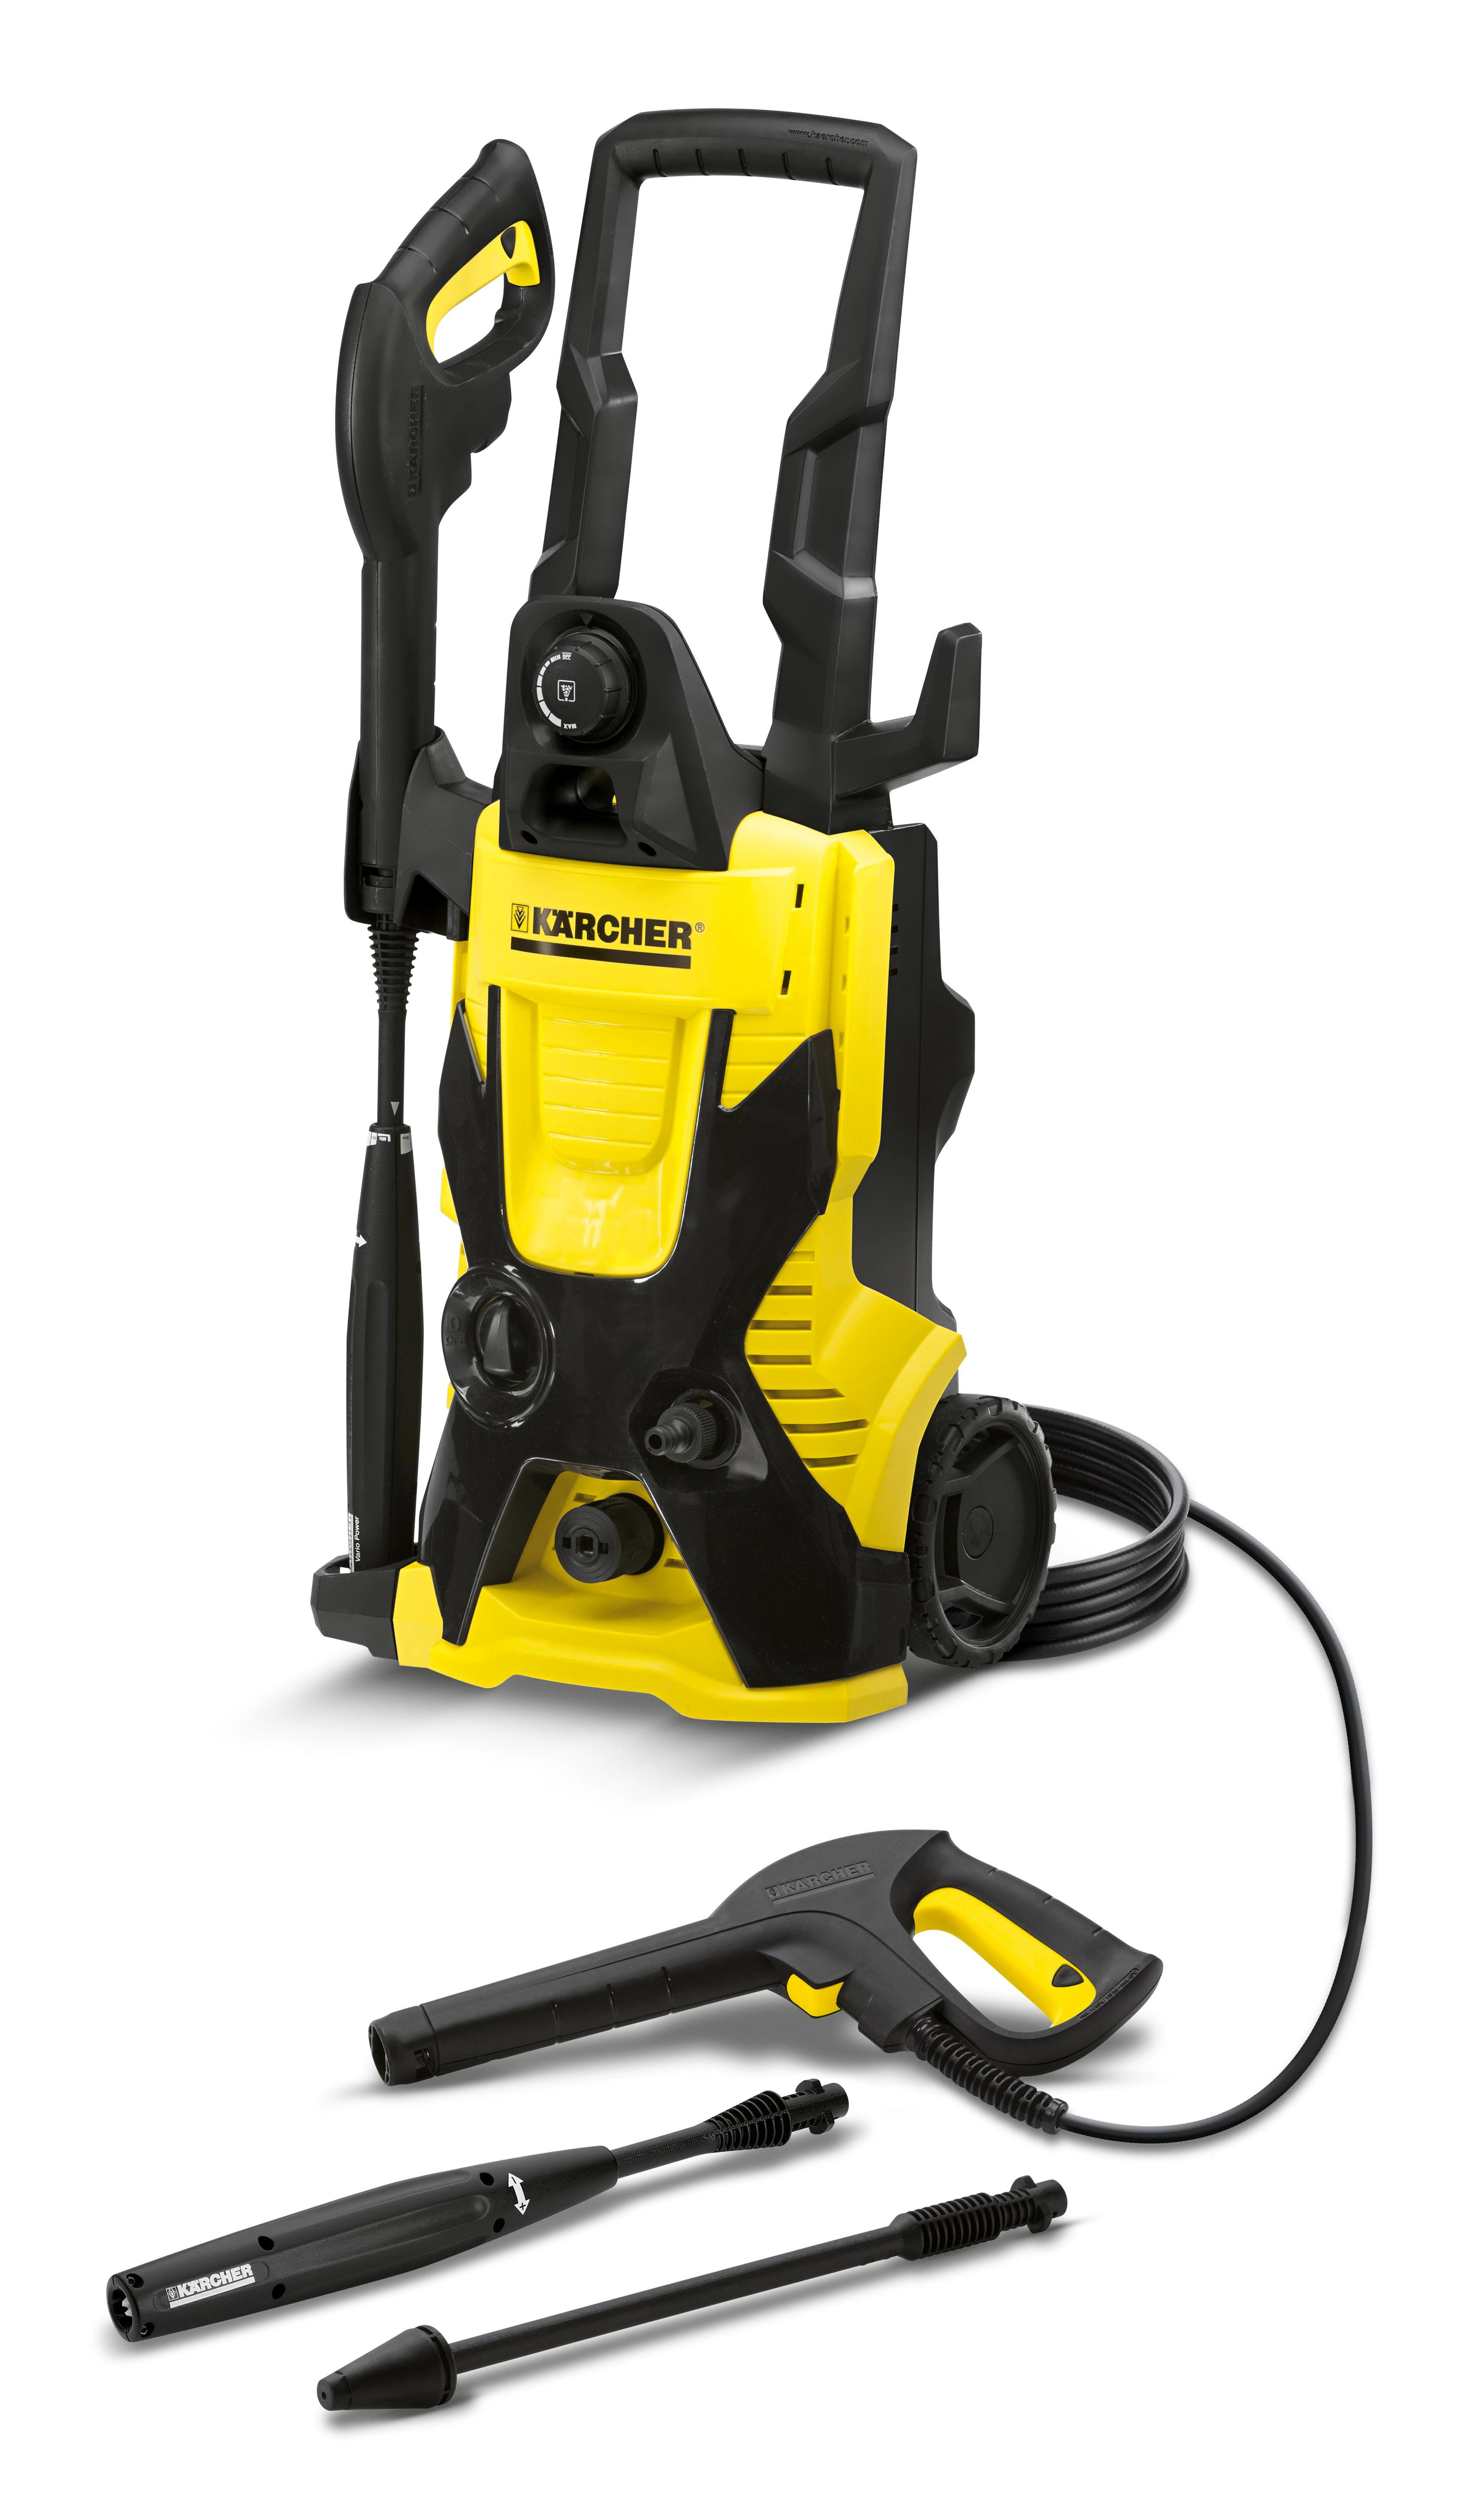 karcher pressure washer karcher k4 electric power pressure washer 11070